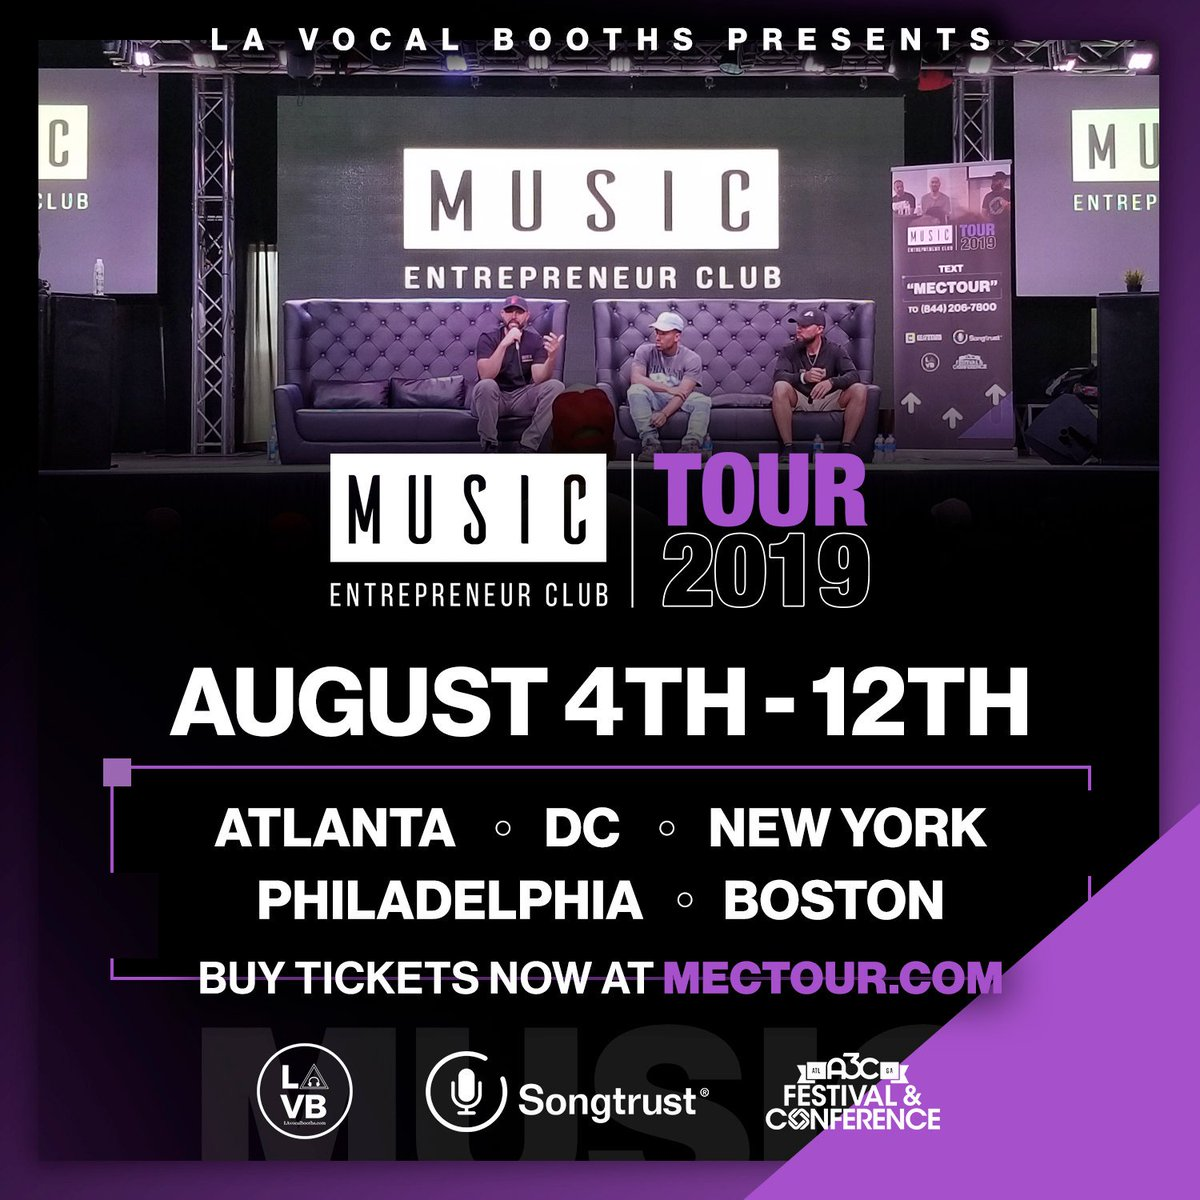 I'm coming with the squad to ATLANTA, DC, NY, PHILLY & BOSTON in August! 🙌  You can't afford NOT to come if you want to turn your passion into a career...  Ticket prices go up the longer you wait: http://www.mectour.com